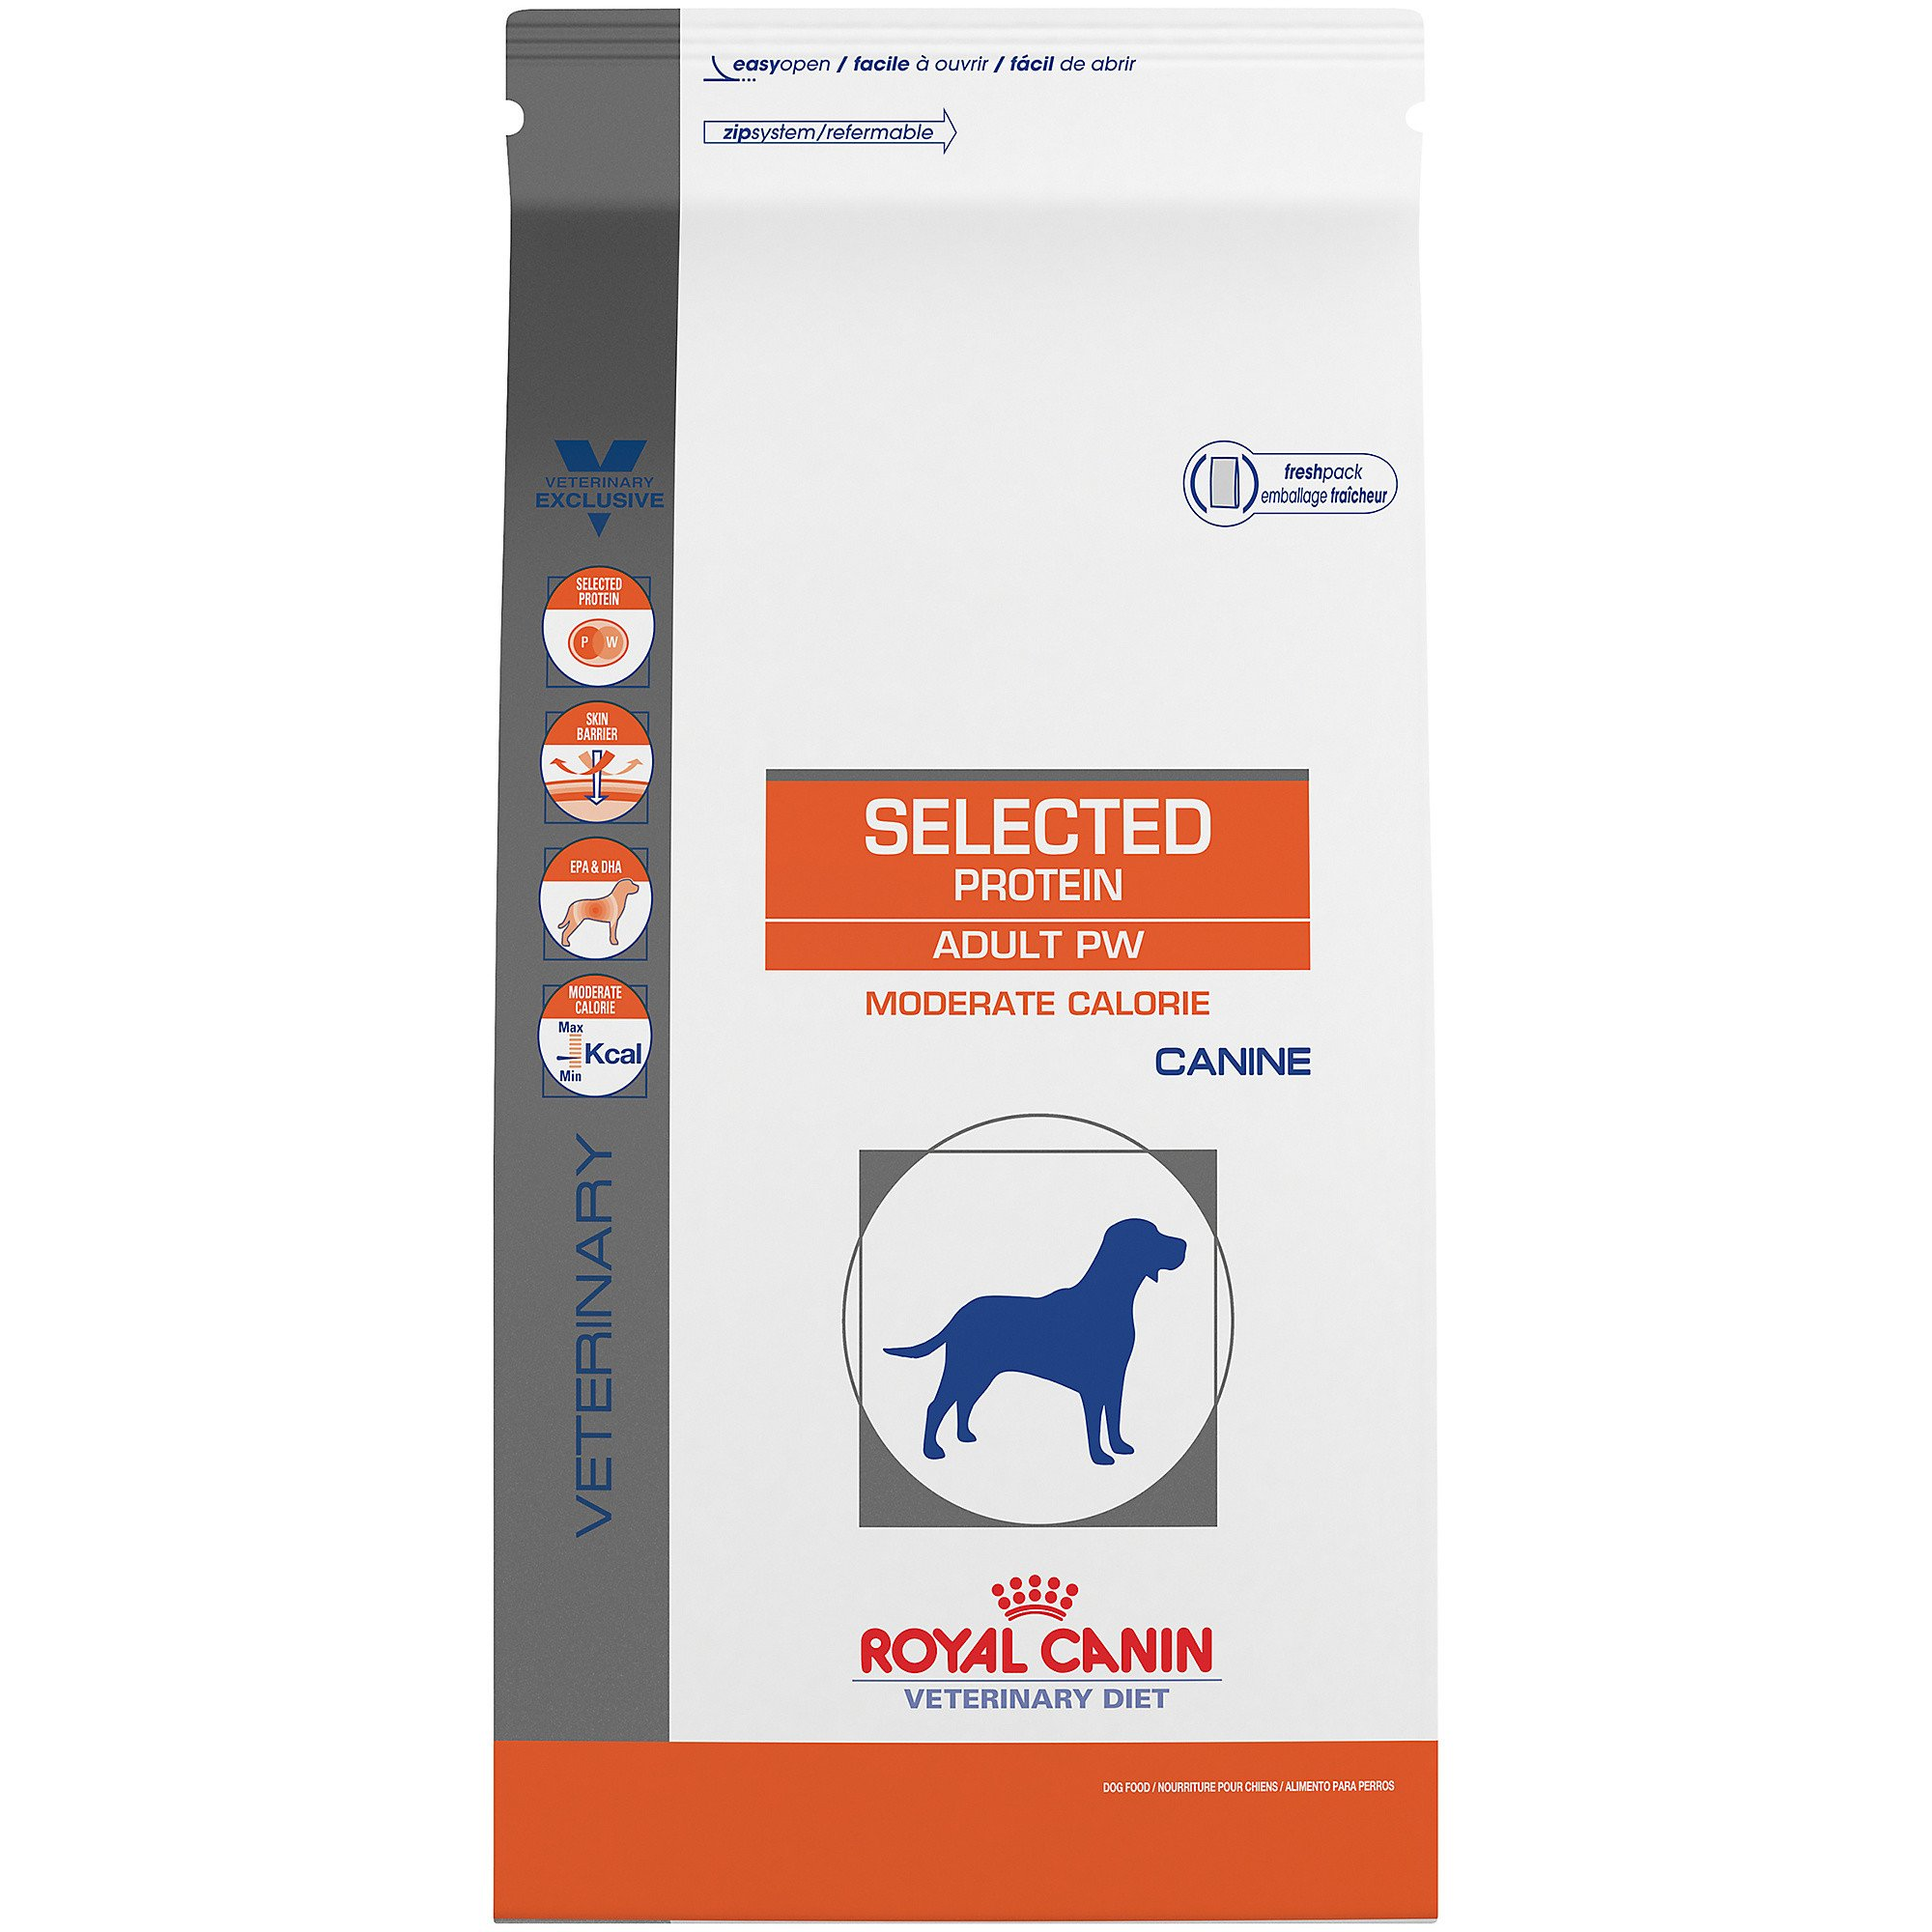 Royal Canin Veterinary Diet Canine Selected Protein Adult PW Moderate Calorie Dry Dog Food, 7.7 lbs.